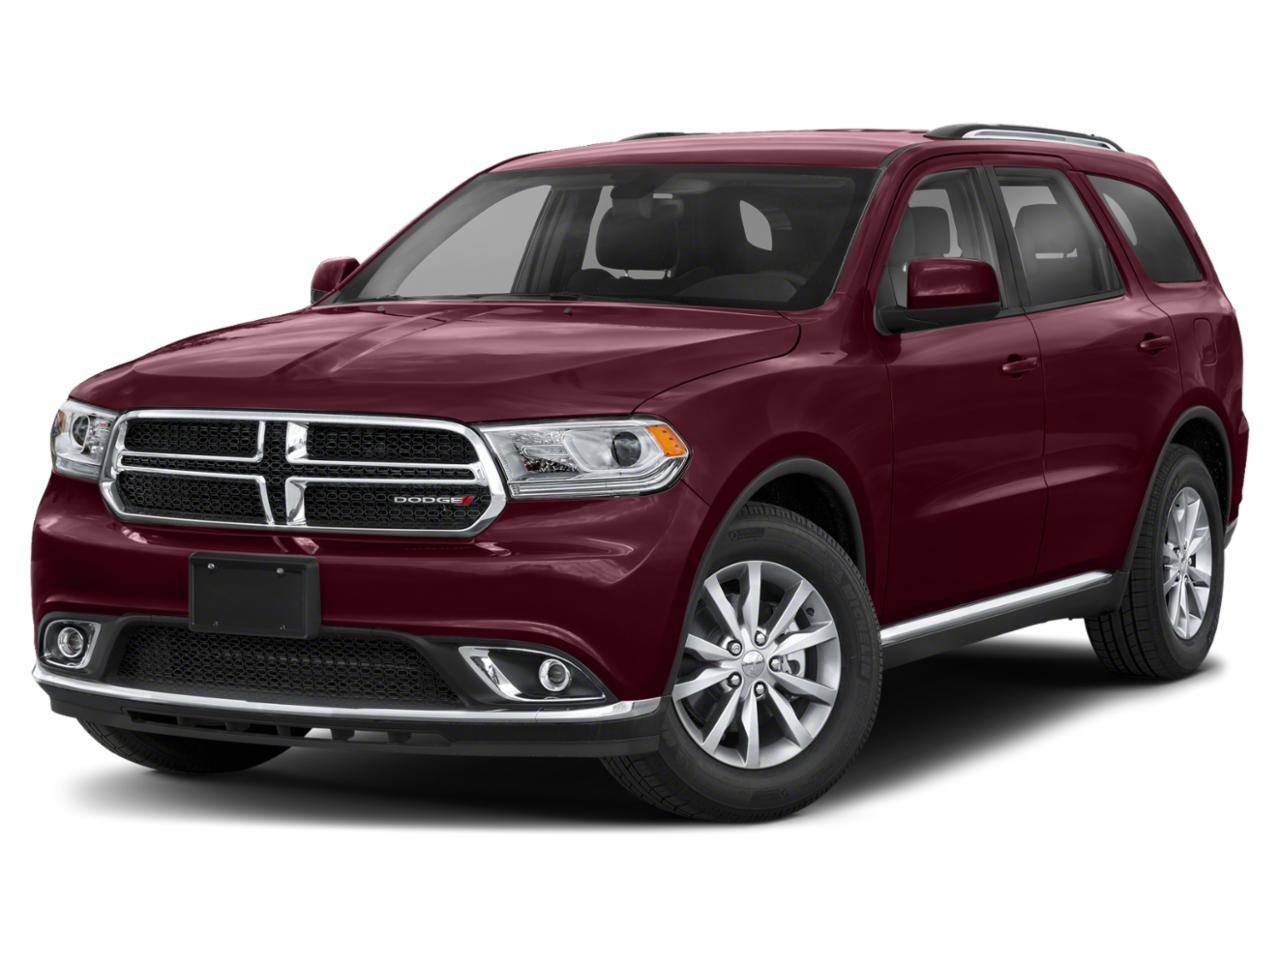 2018 Dodge Durango Vehicle Photo in Bend, OR 97701